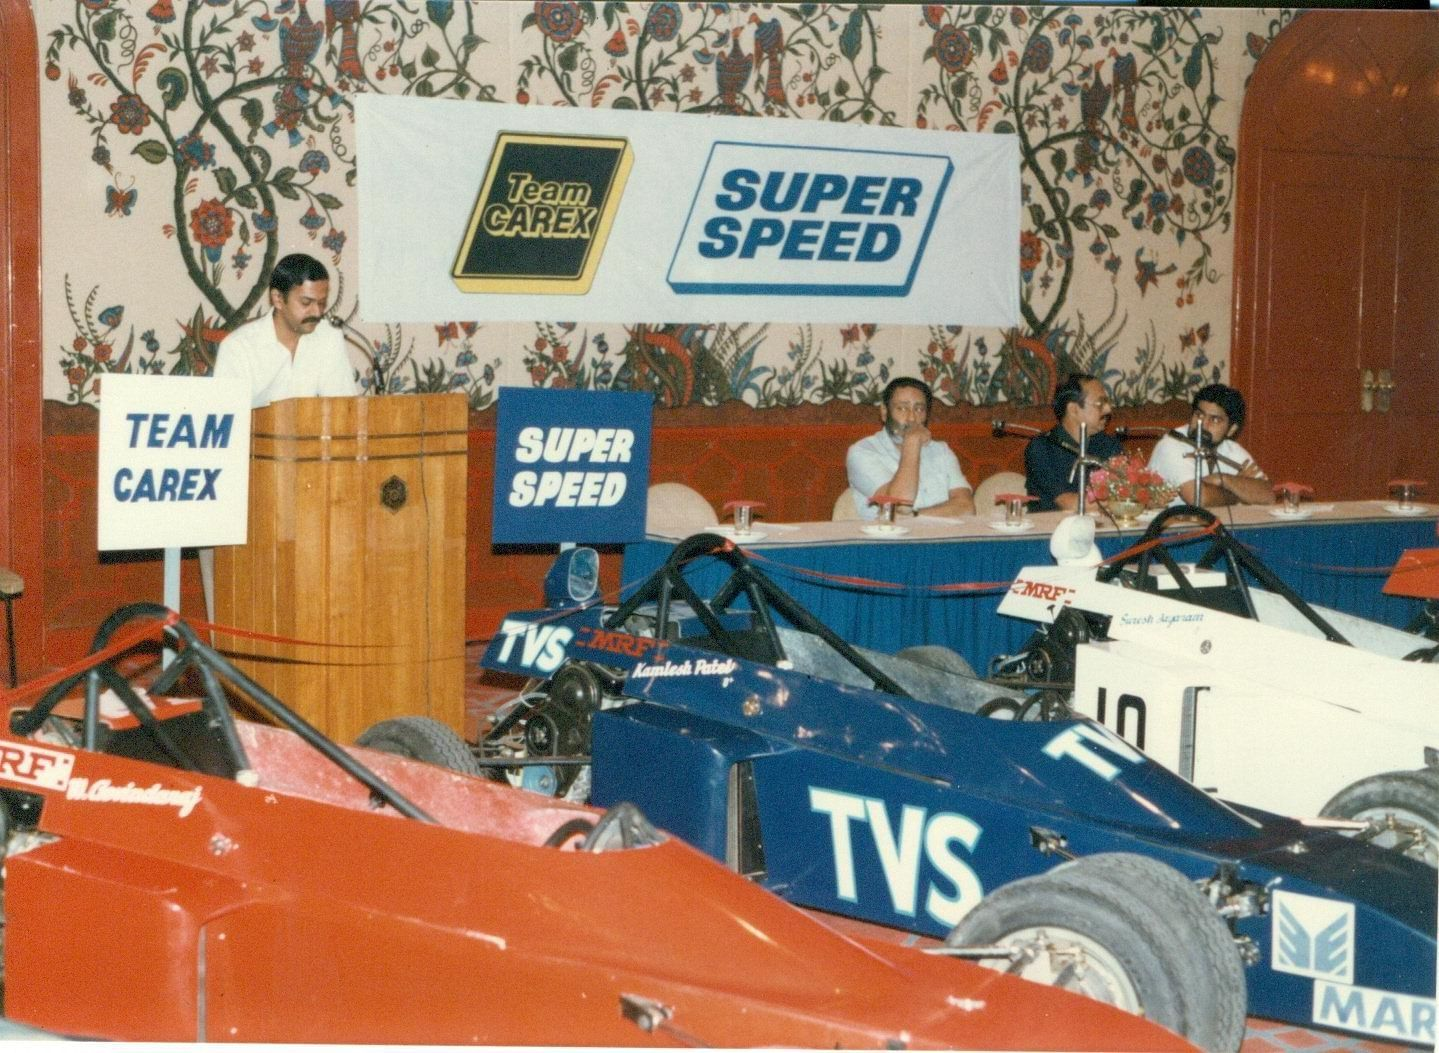 Formula India Single Seater Maruti Engine is Kari's greatest contribution to Indian motorsport. Here he is seen at the grand launch of FISSME in 1988 at the Taj Hotel in Madras. (Source: Facebook/Vicky Chandhok)